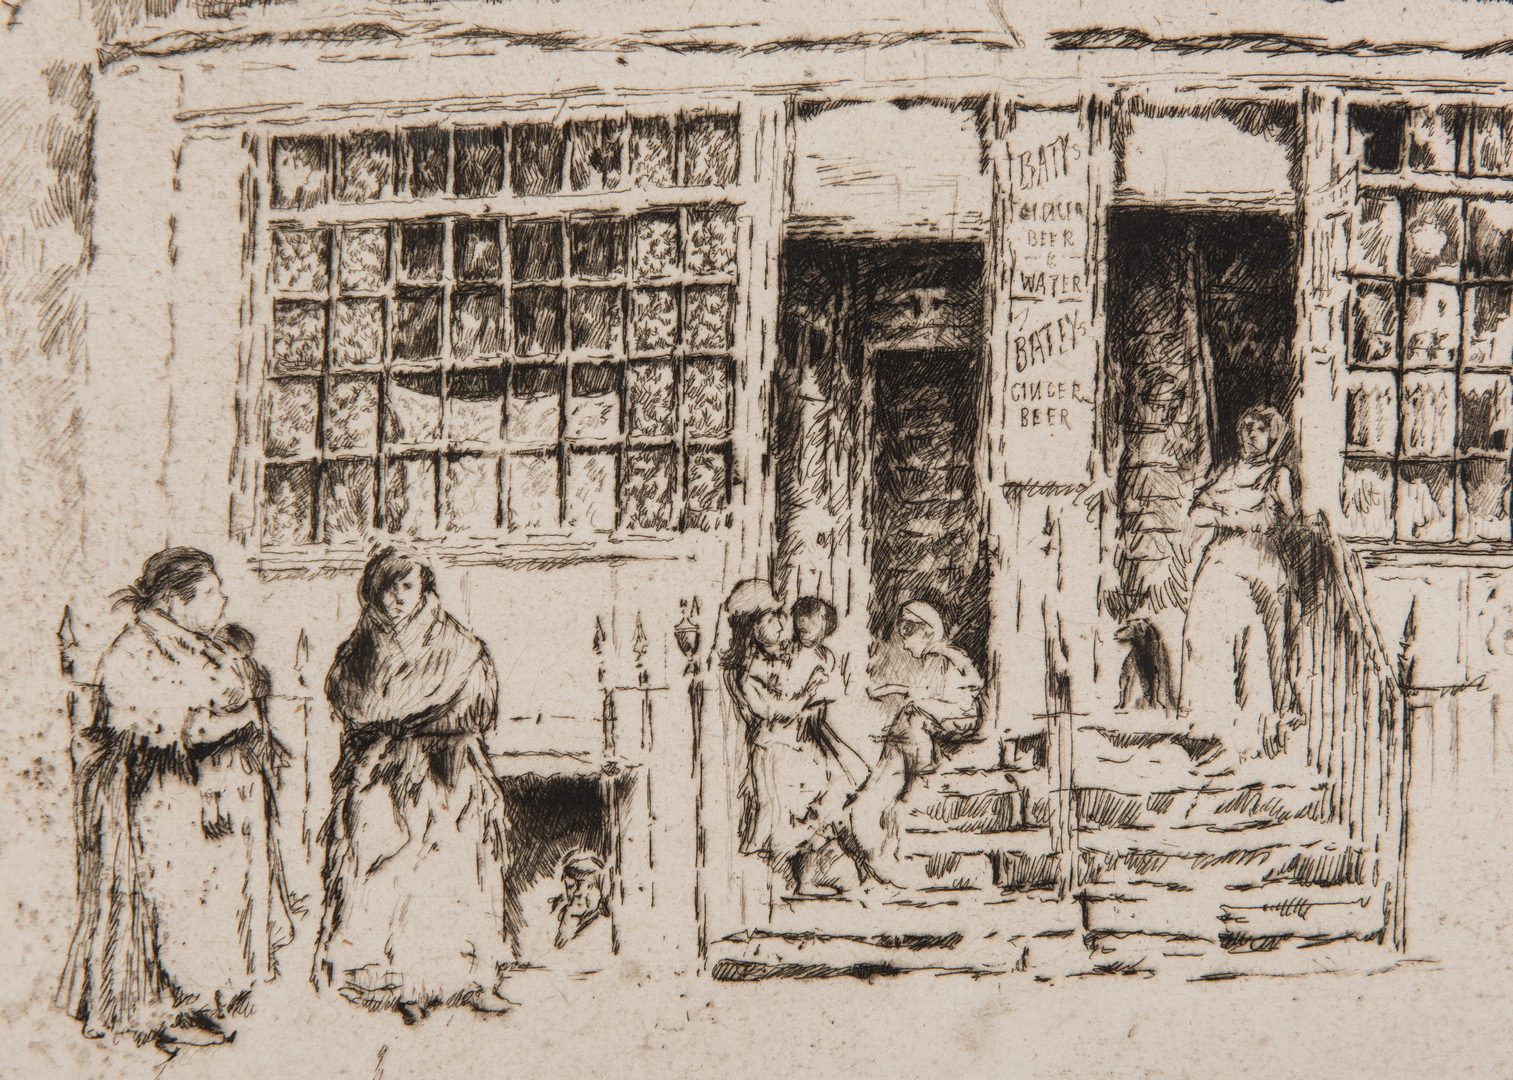 Lot 676: 3 Etchings, incl. Joseph Pennell, Felician Rops